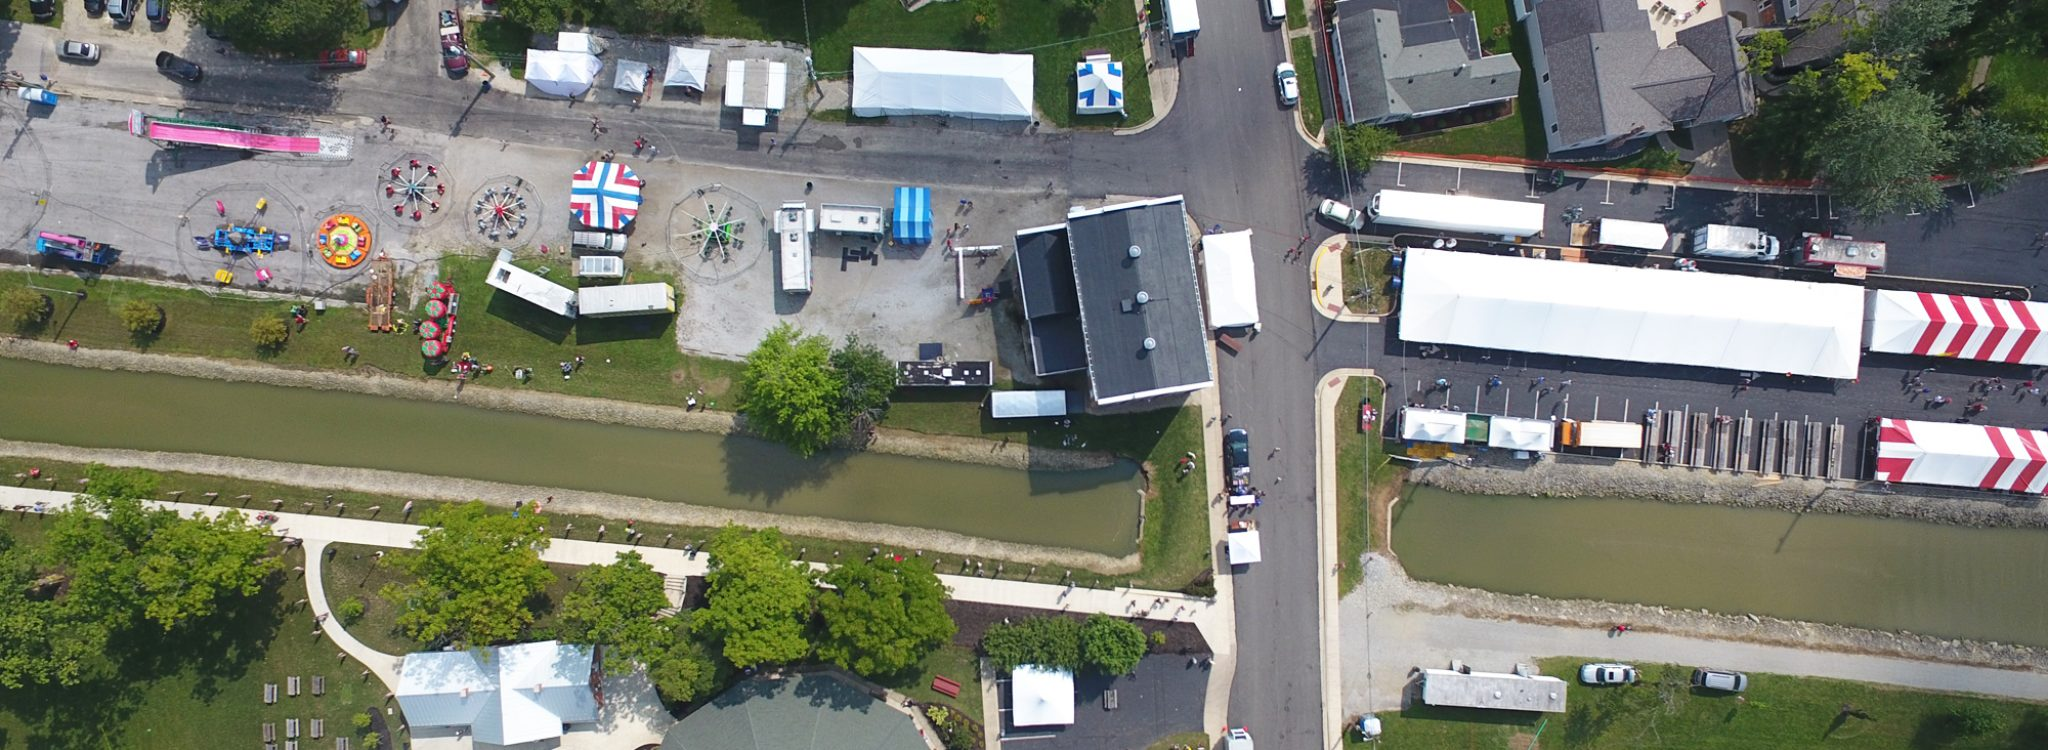 An arial view of downtown New Bremen, Ohio during Bremenfest